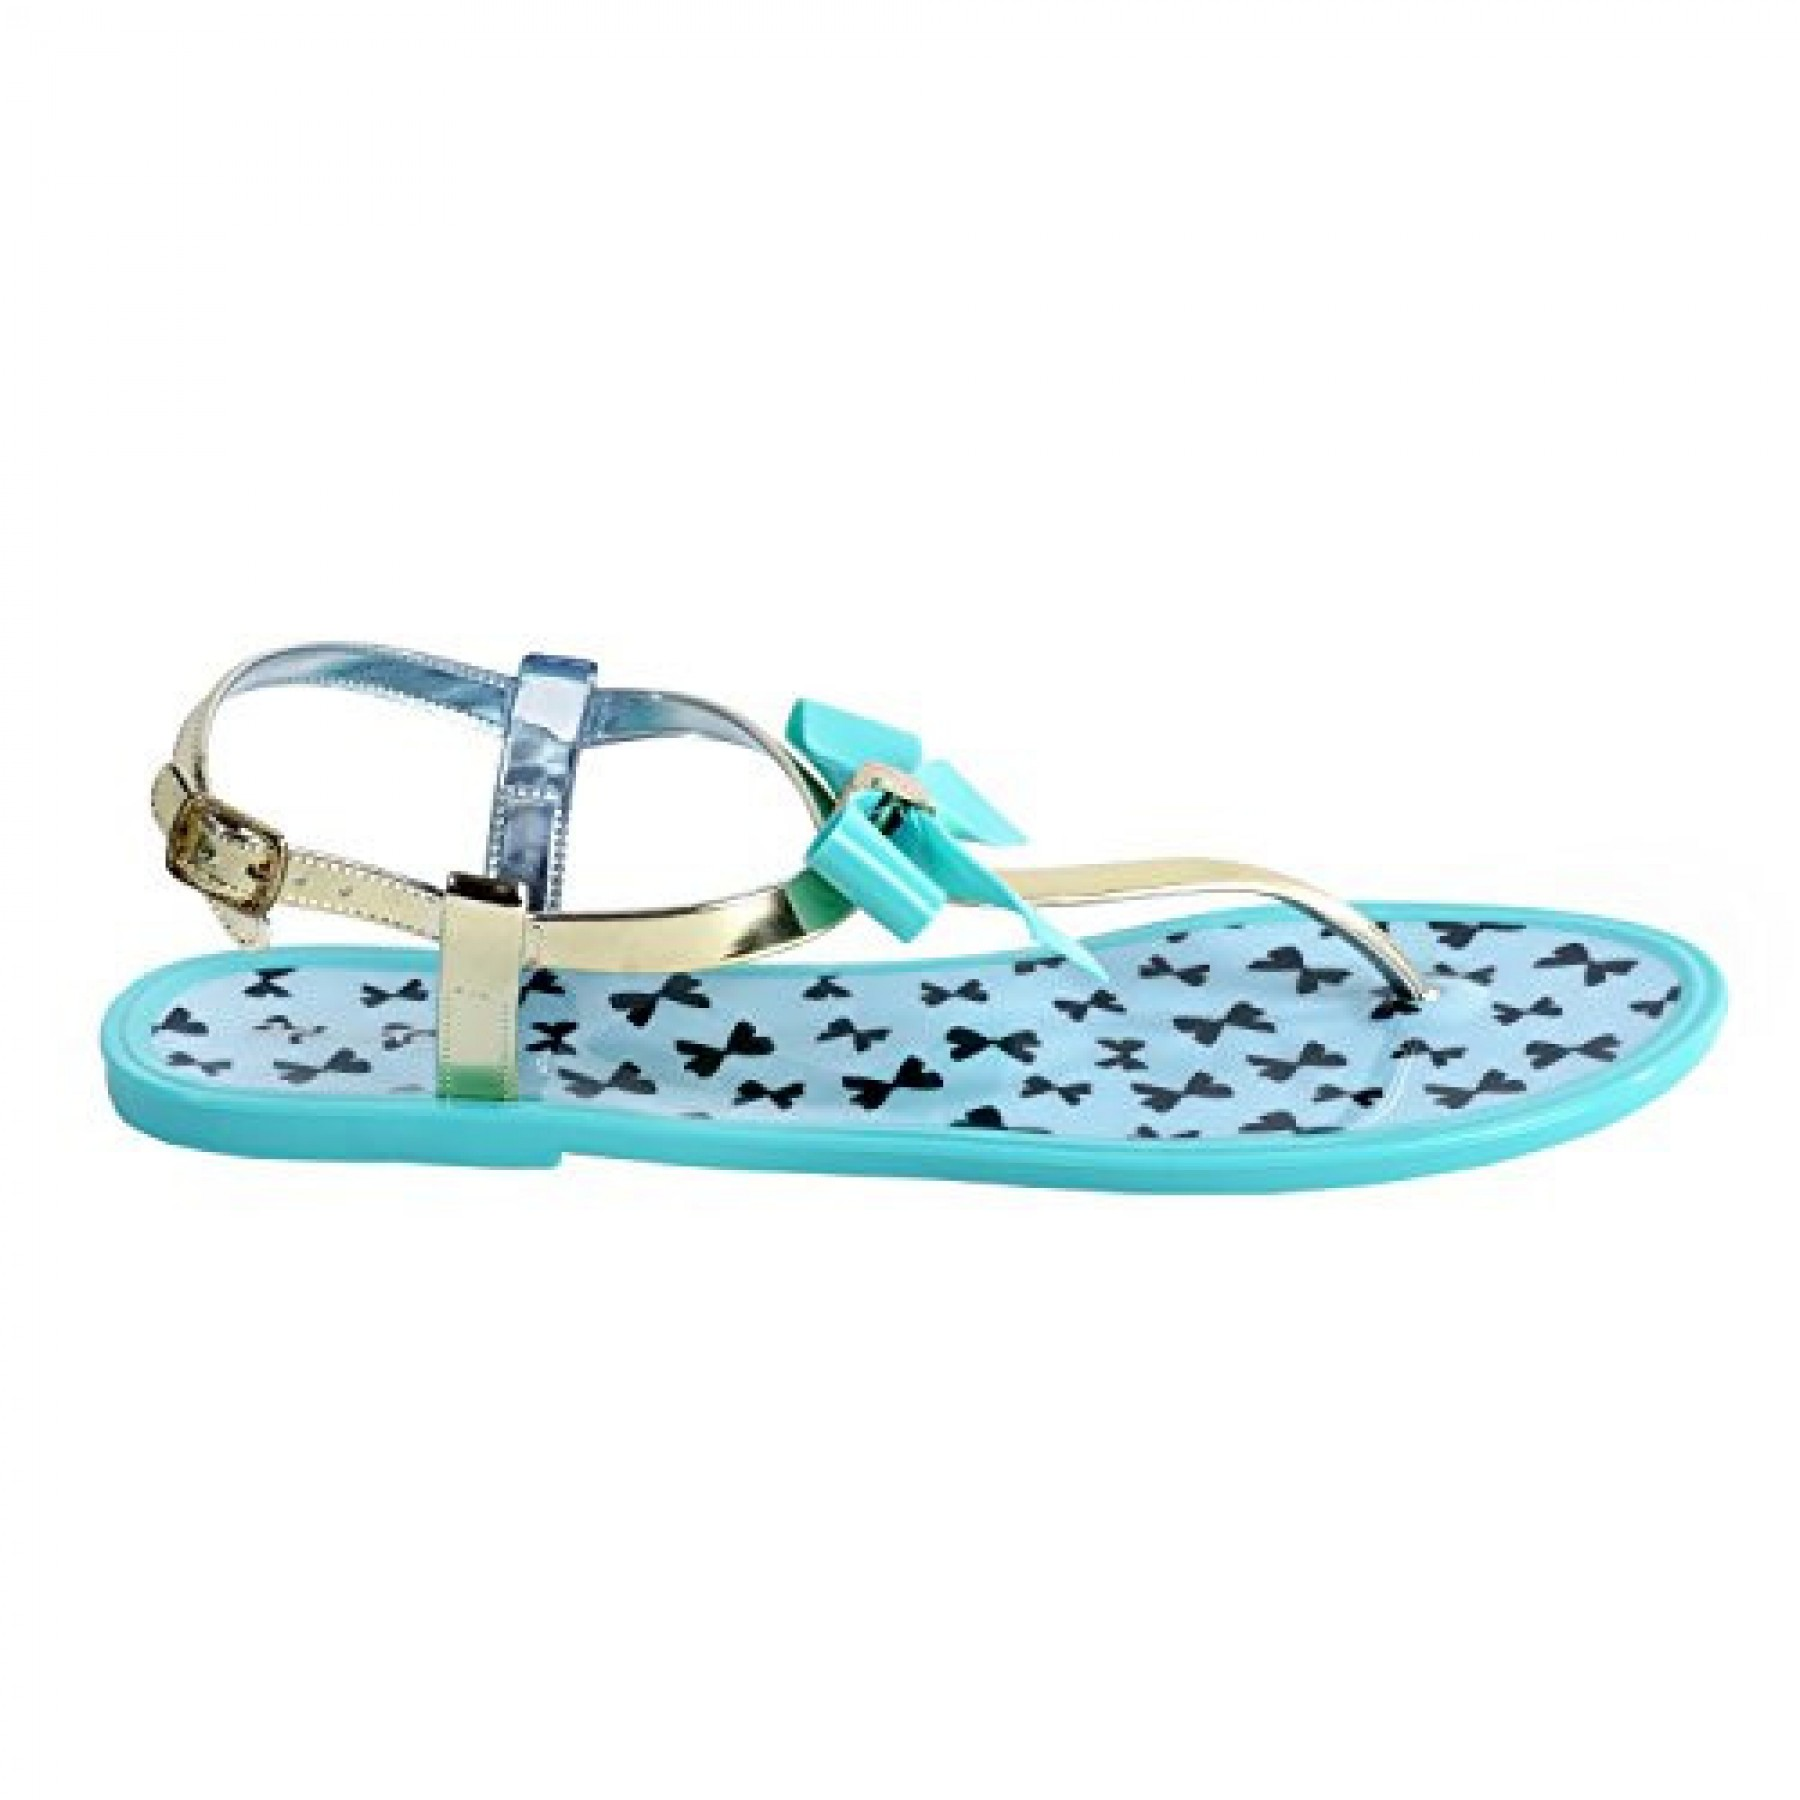 Women's Mint Deor Manmade Jelly Sandal with Charming Bow